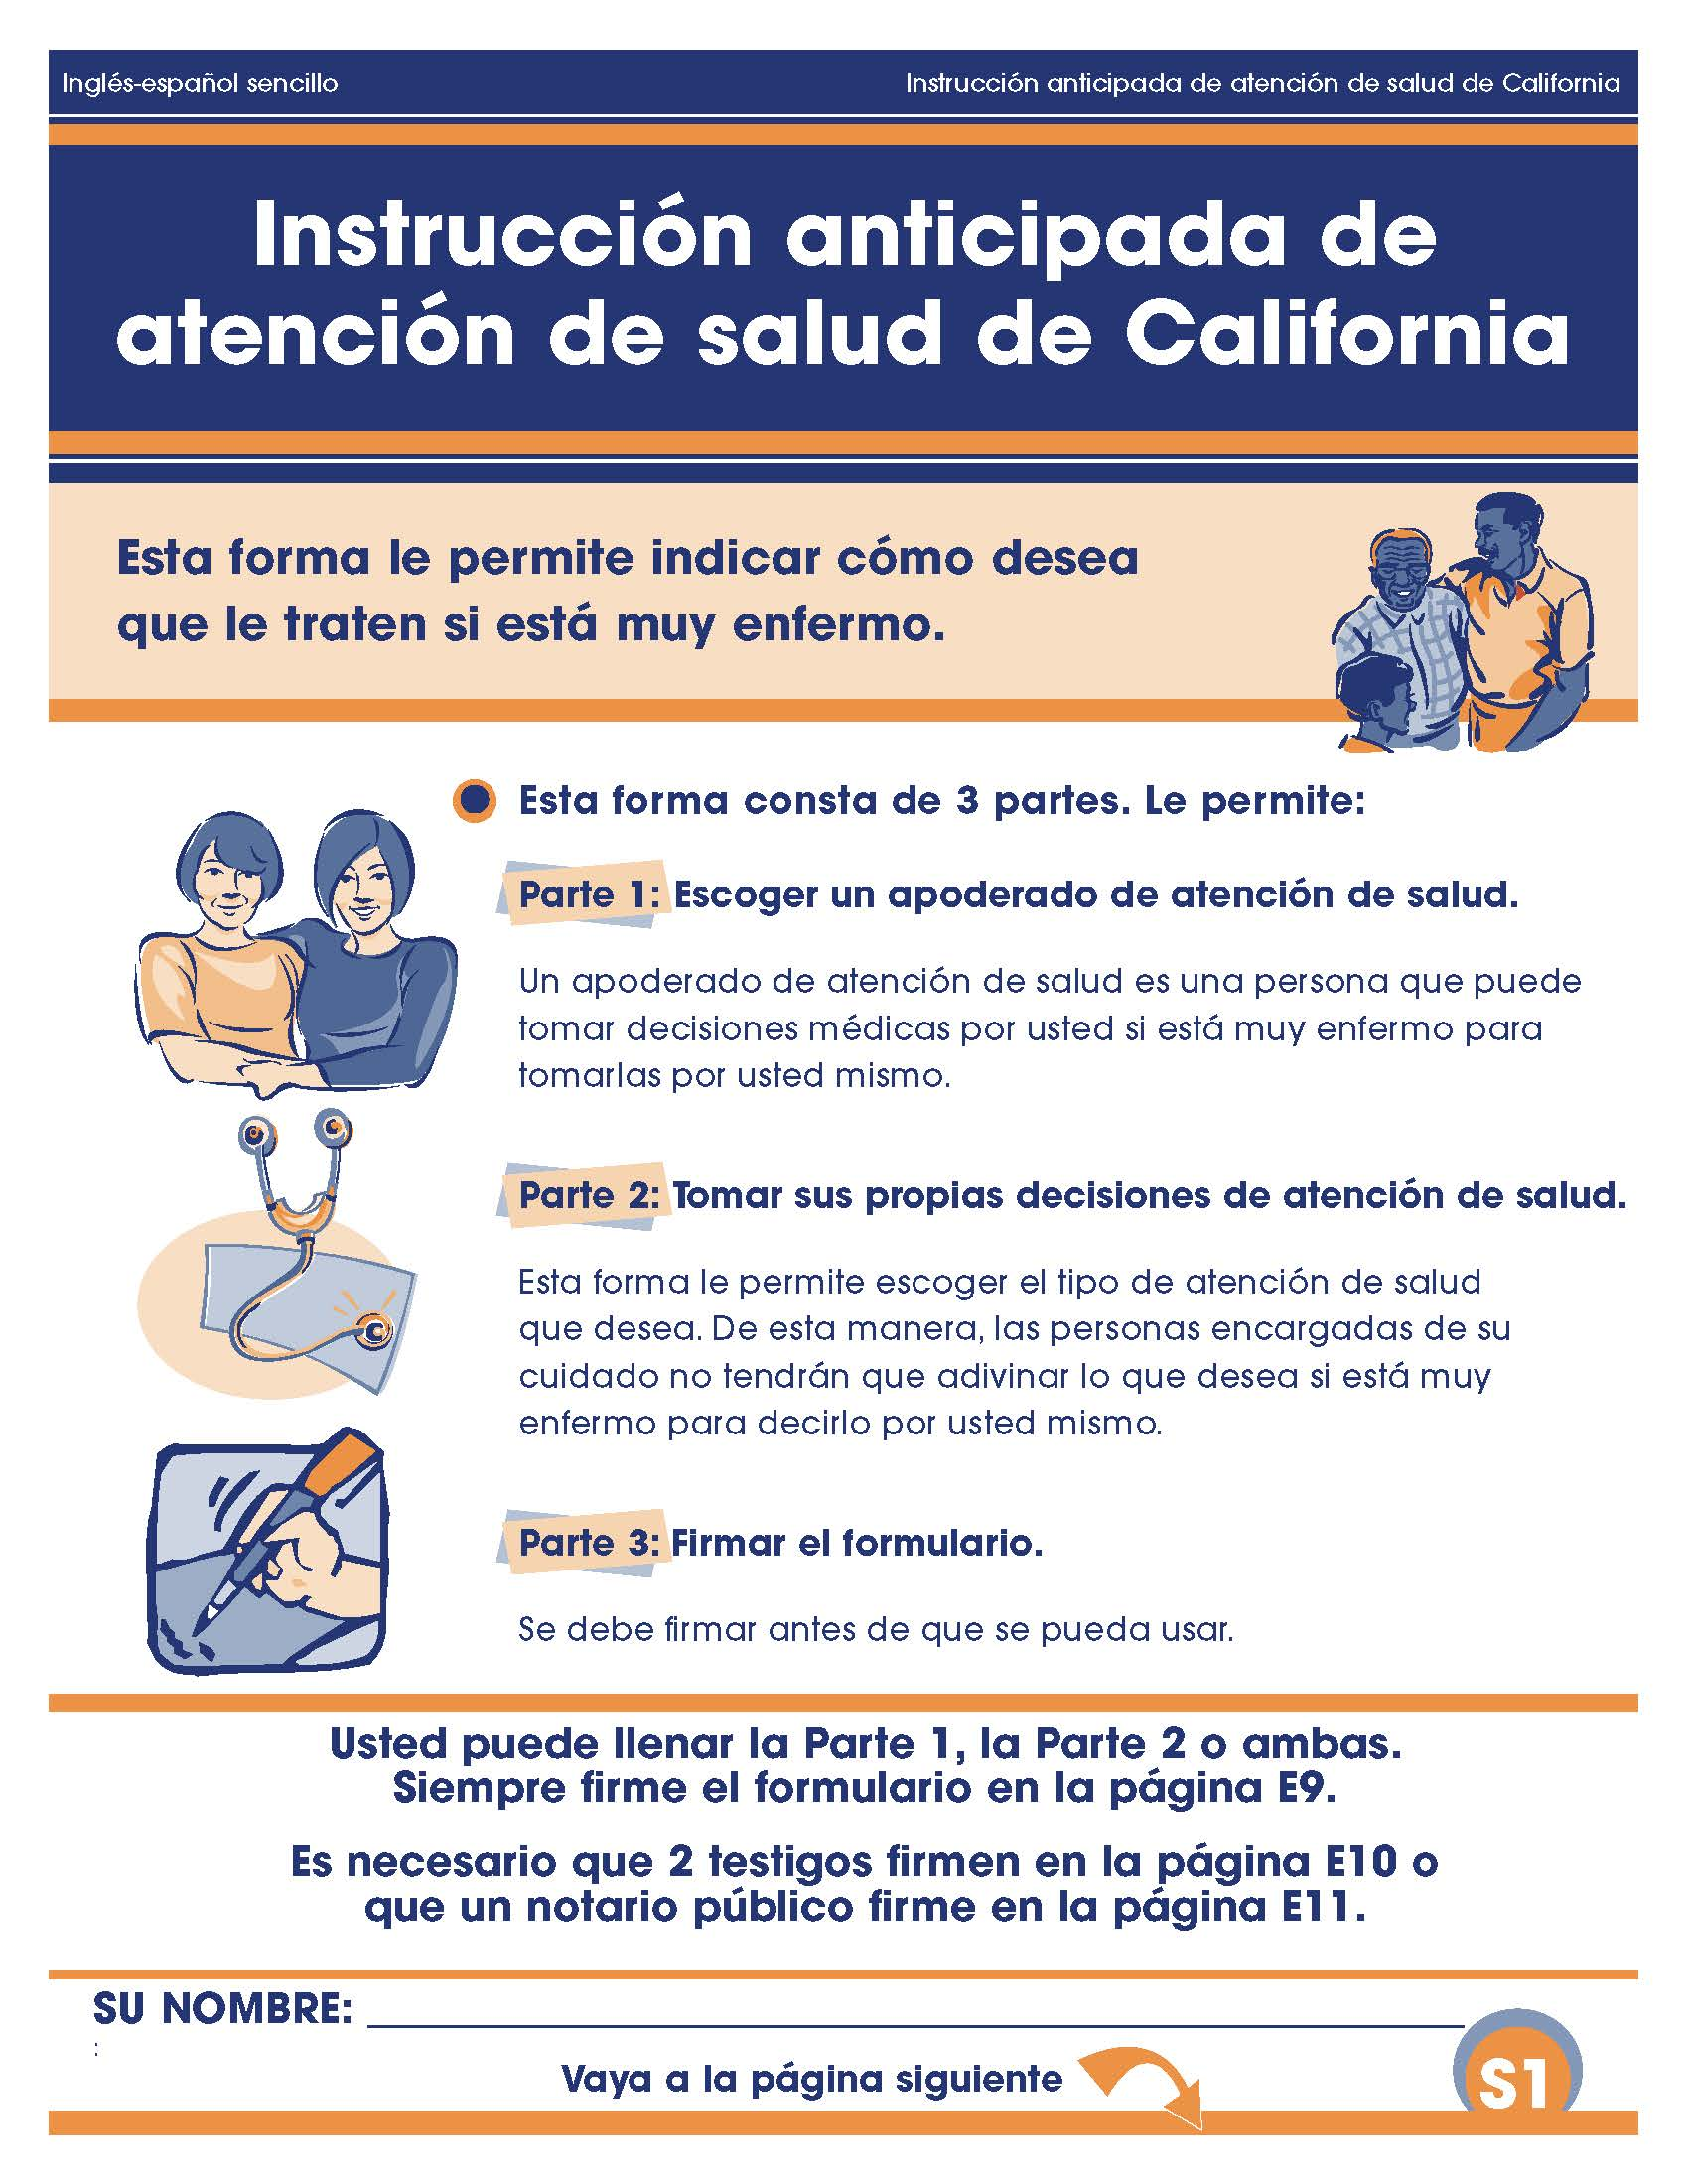 If You Cannot Print The Form, We Can Send You A Free Copy. Just Call The  Health Education Request Line At (800) 421 2560 Ext. 3126.